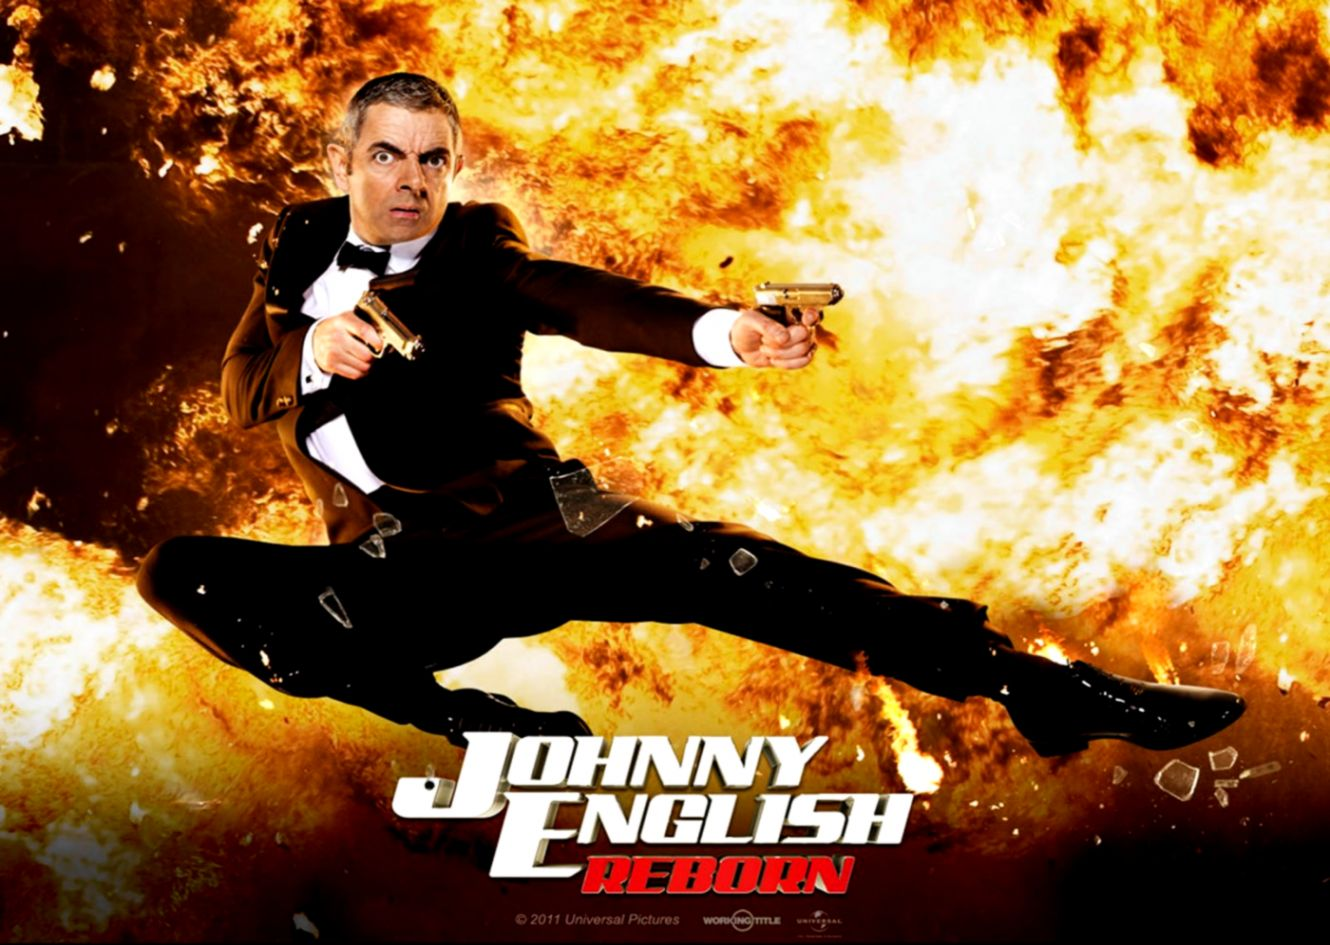 Johnny English Reborn Poster 1400x1050 Wallpapers 1400x1050